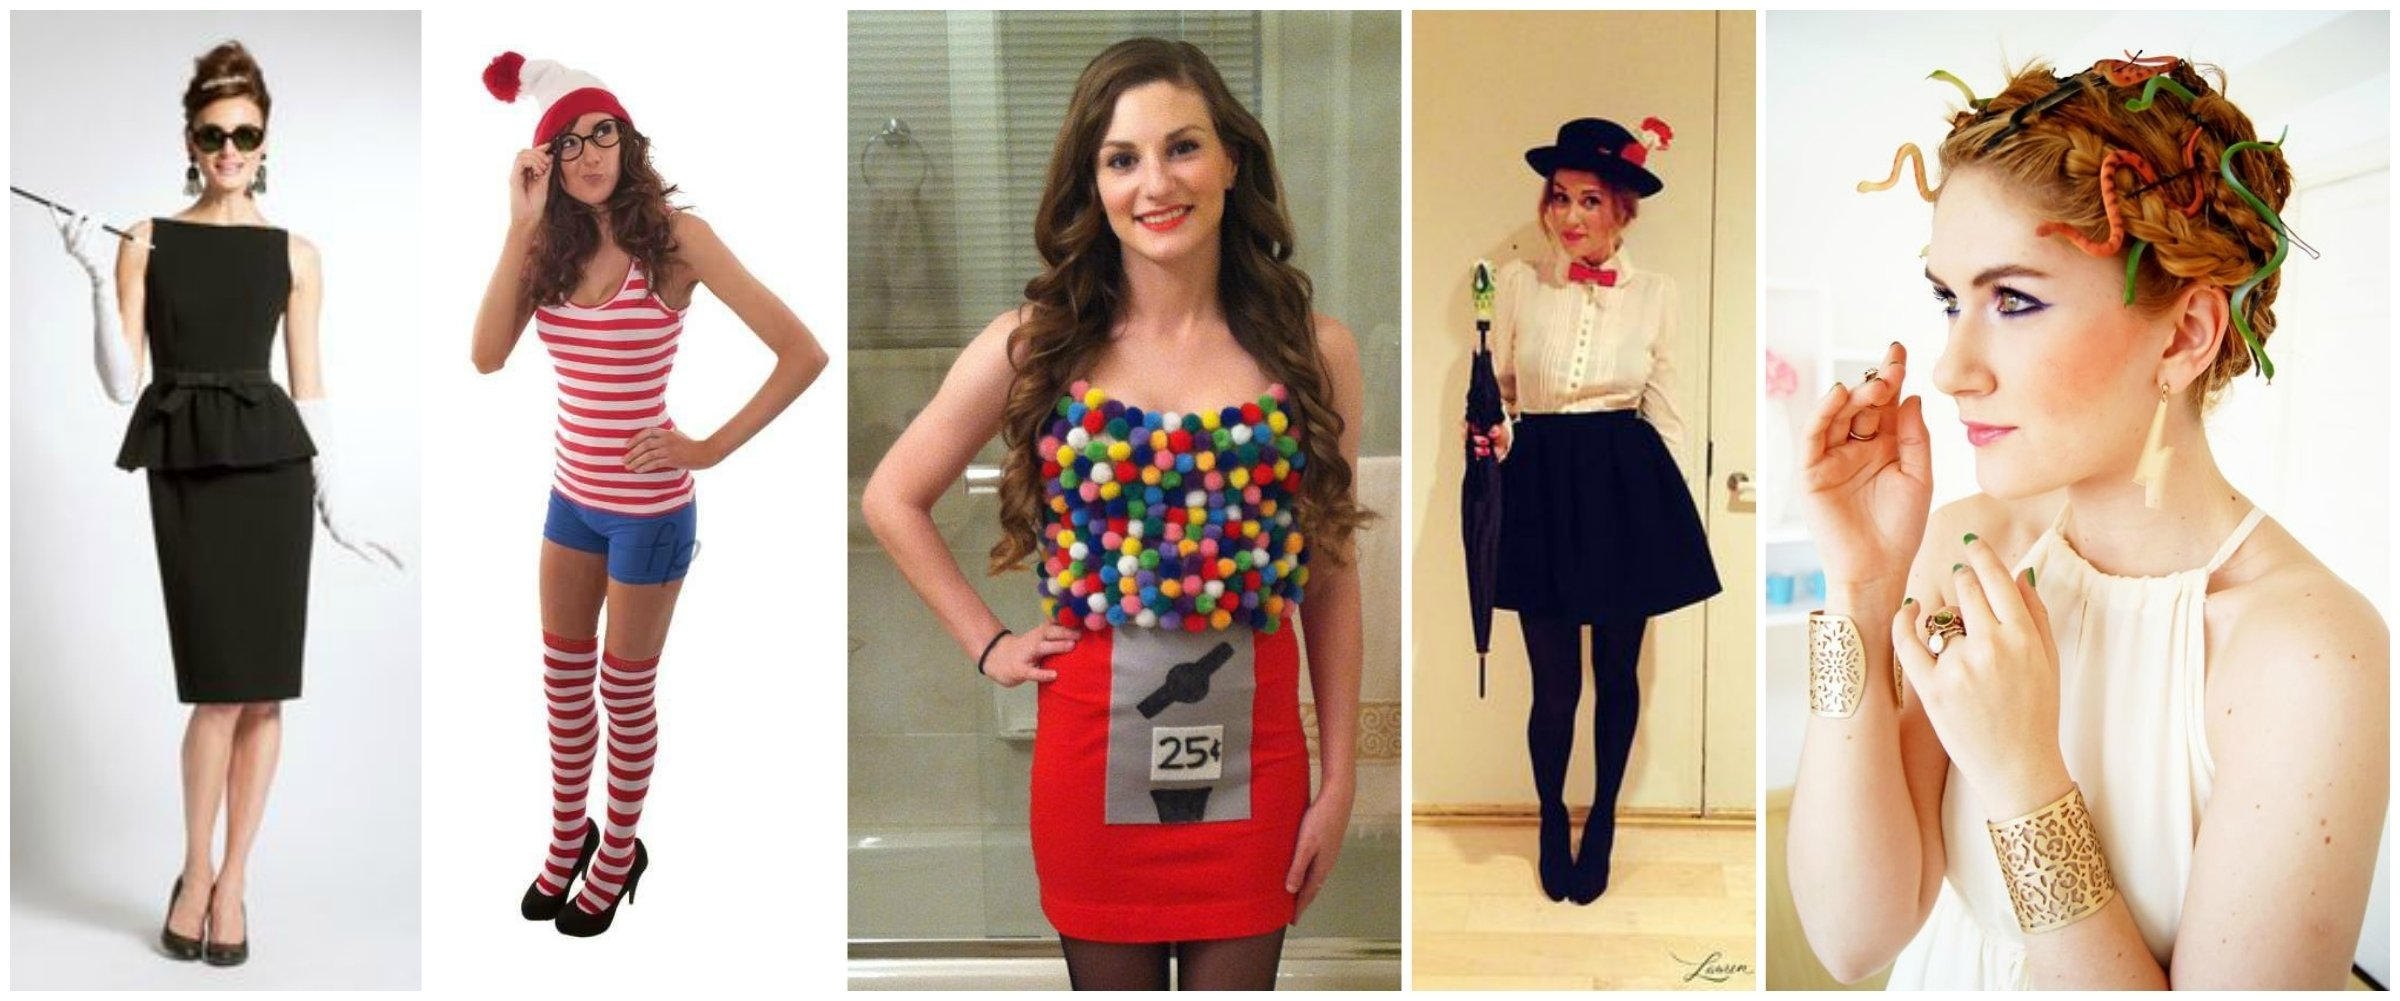 10 Unique Homemade Costumes For Women Ideas Easy 57 halloween costumes for girls homemade 25 best halloween costume 2020